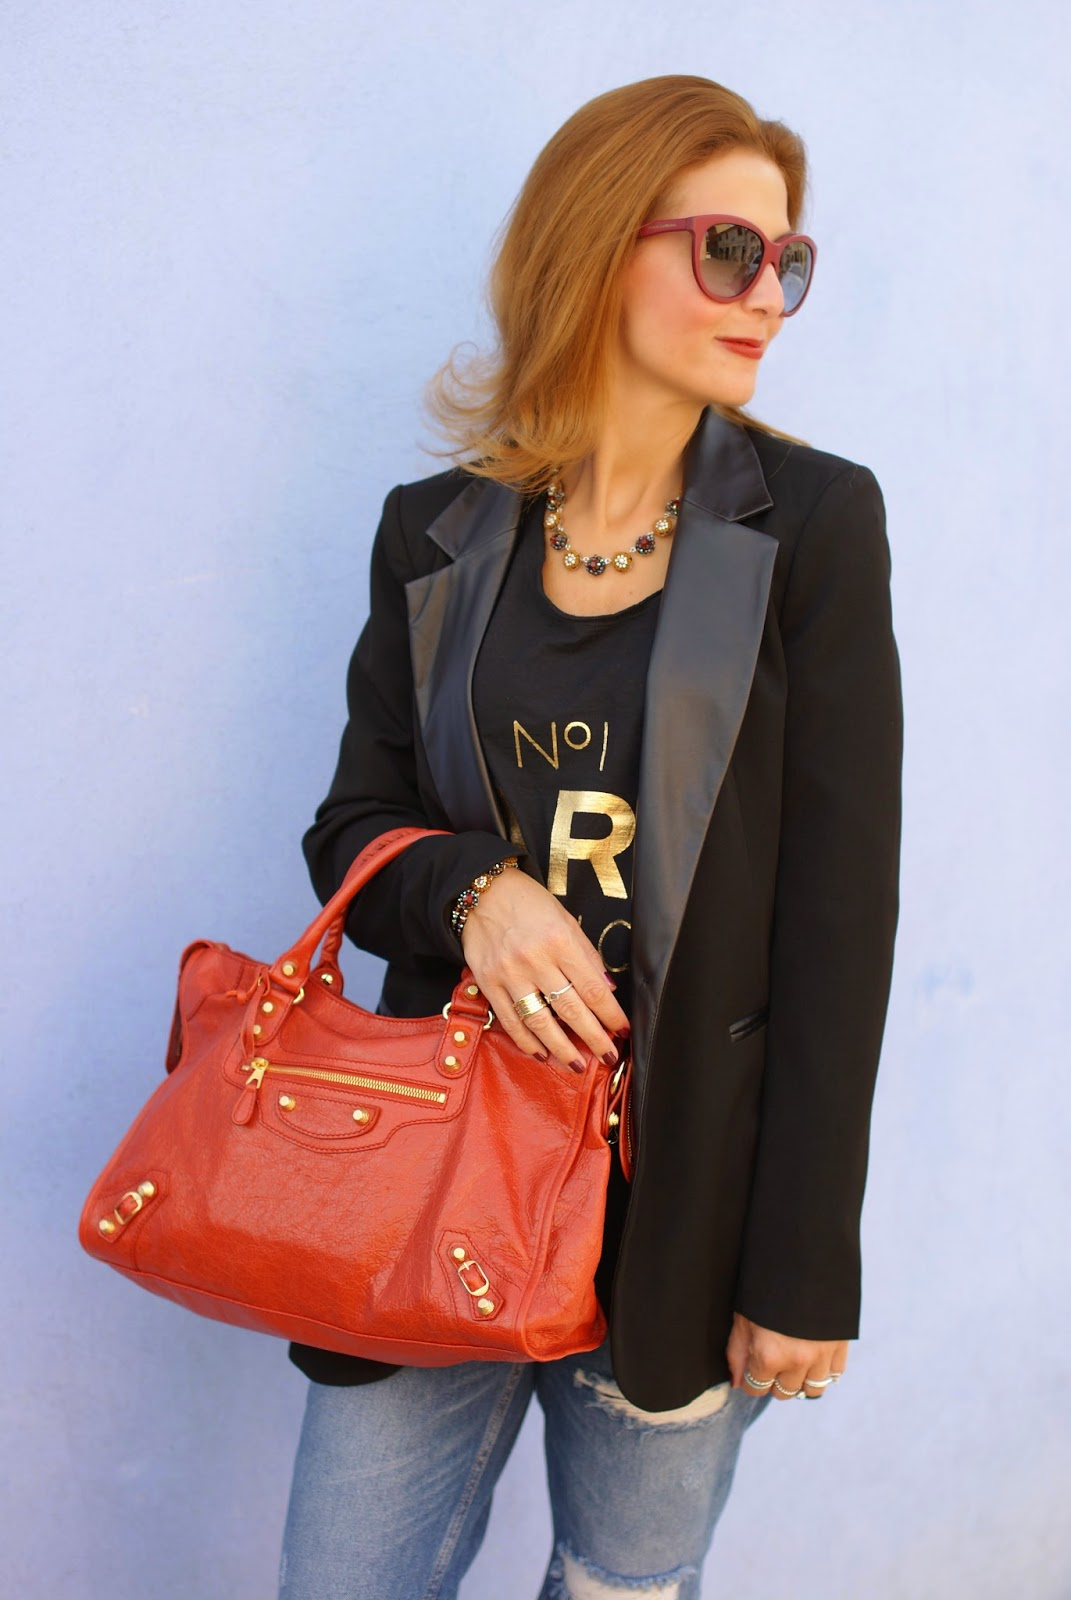 Sodini bijoux new fall winter collection, Balenciaga bag rouge ambre, Fashion and Cookies, fashion blogger